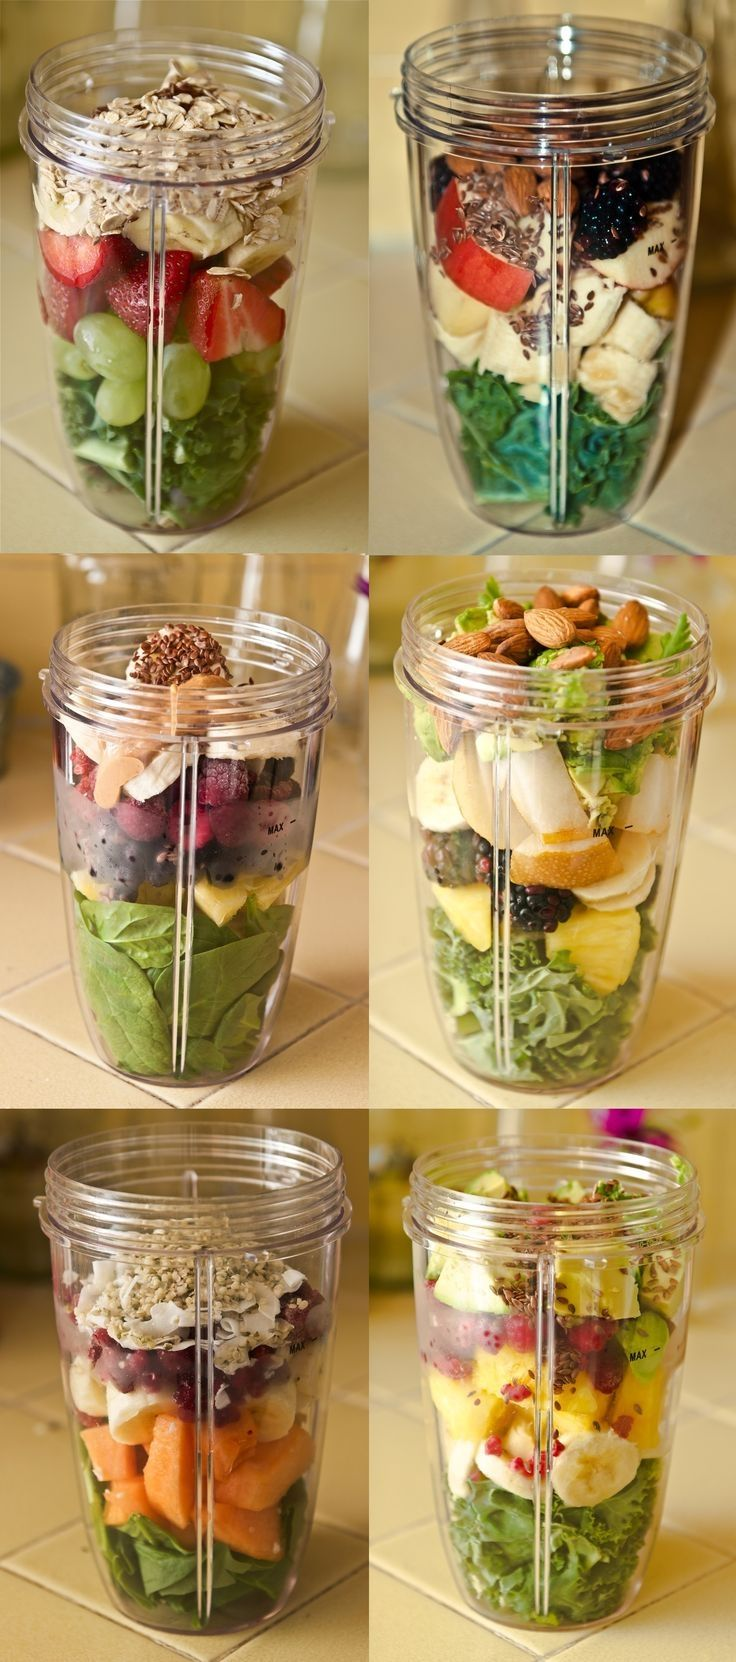 Great recipes for smoothies. #weightlossmotivation